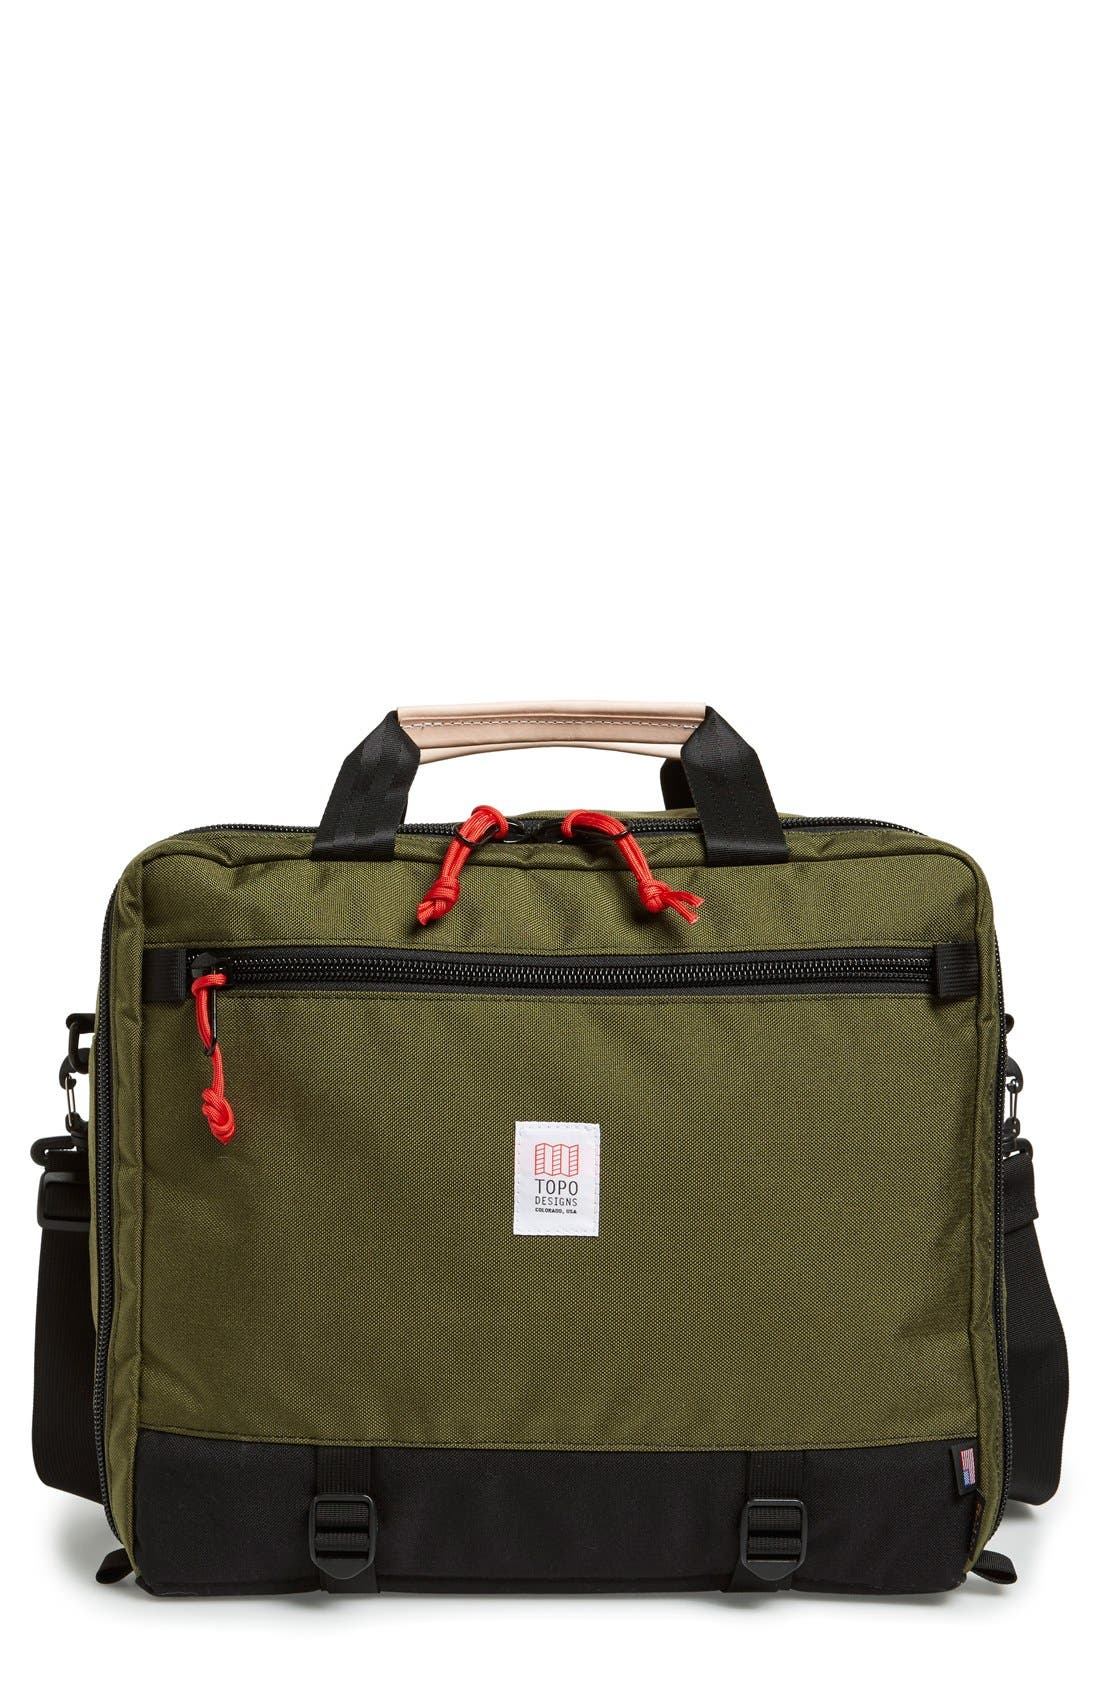 '3-Day' Briefcase,                             Main thumbnail 1, color,                             Black/ Olive